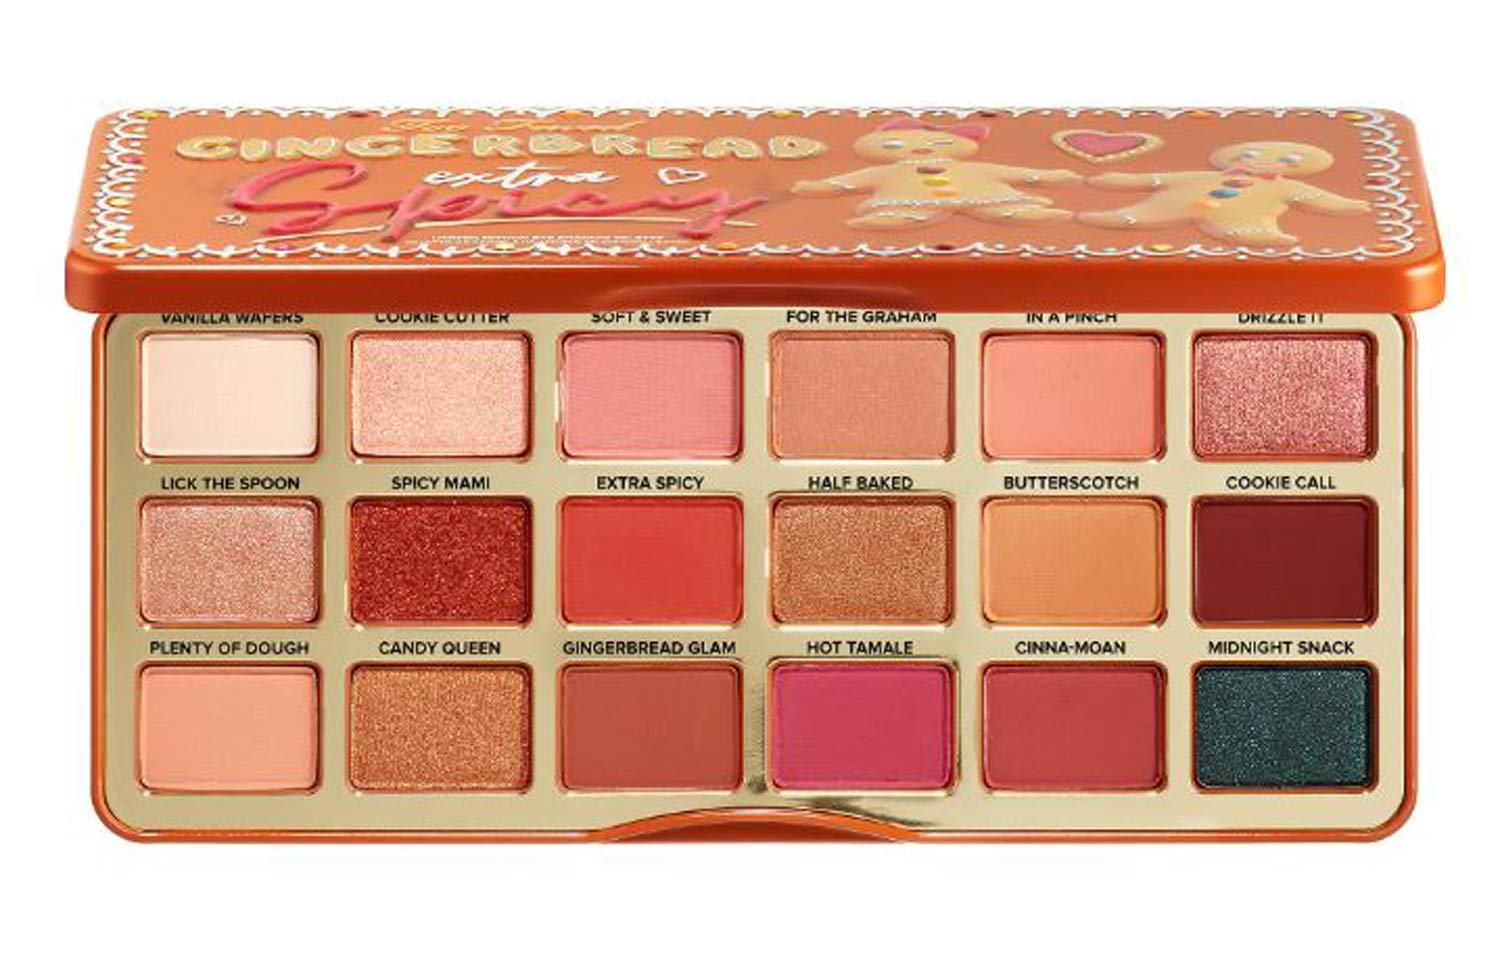 Too Faced Gingerbread Extra Spicy Eyeshadow Palette! 18 Pan Colorful Shades Eyeshadow Palette! Gingerbread Palette Highly Pigmented And Creamy Texture! Paraben-Free, Cruelty-Free And Gluten-Free! by F&T